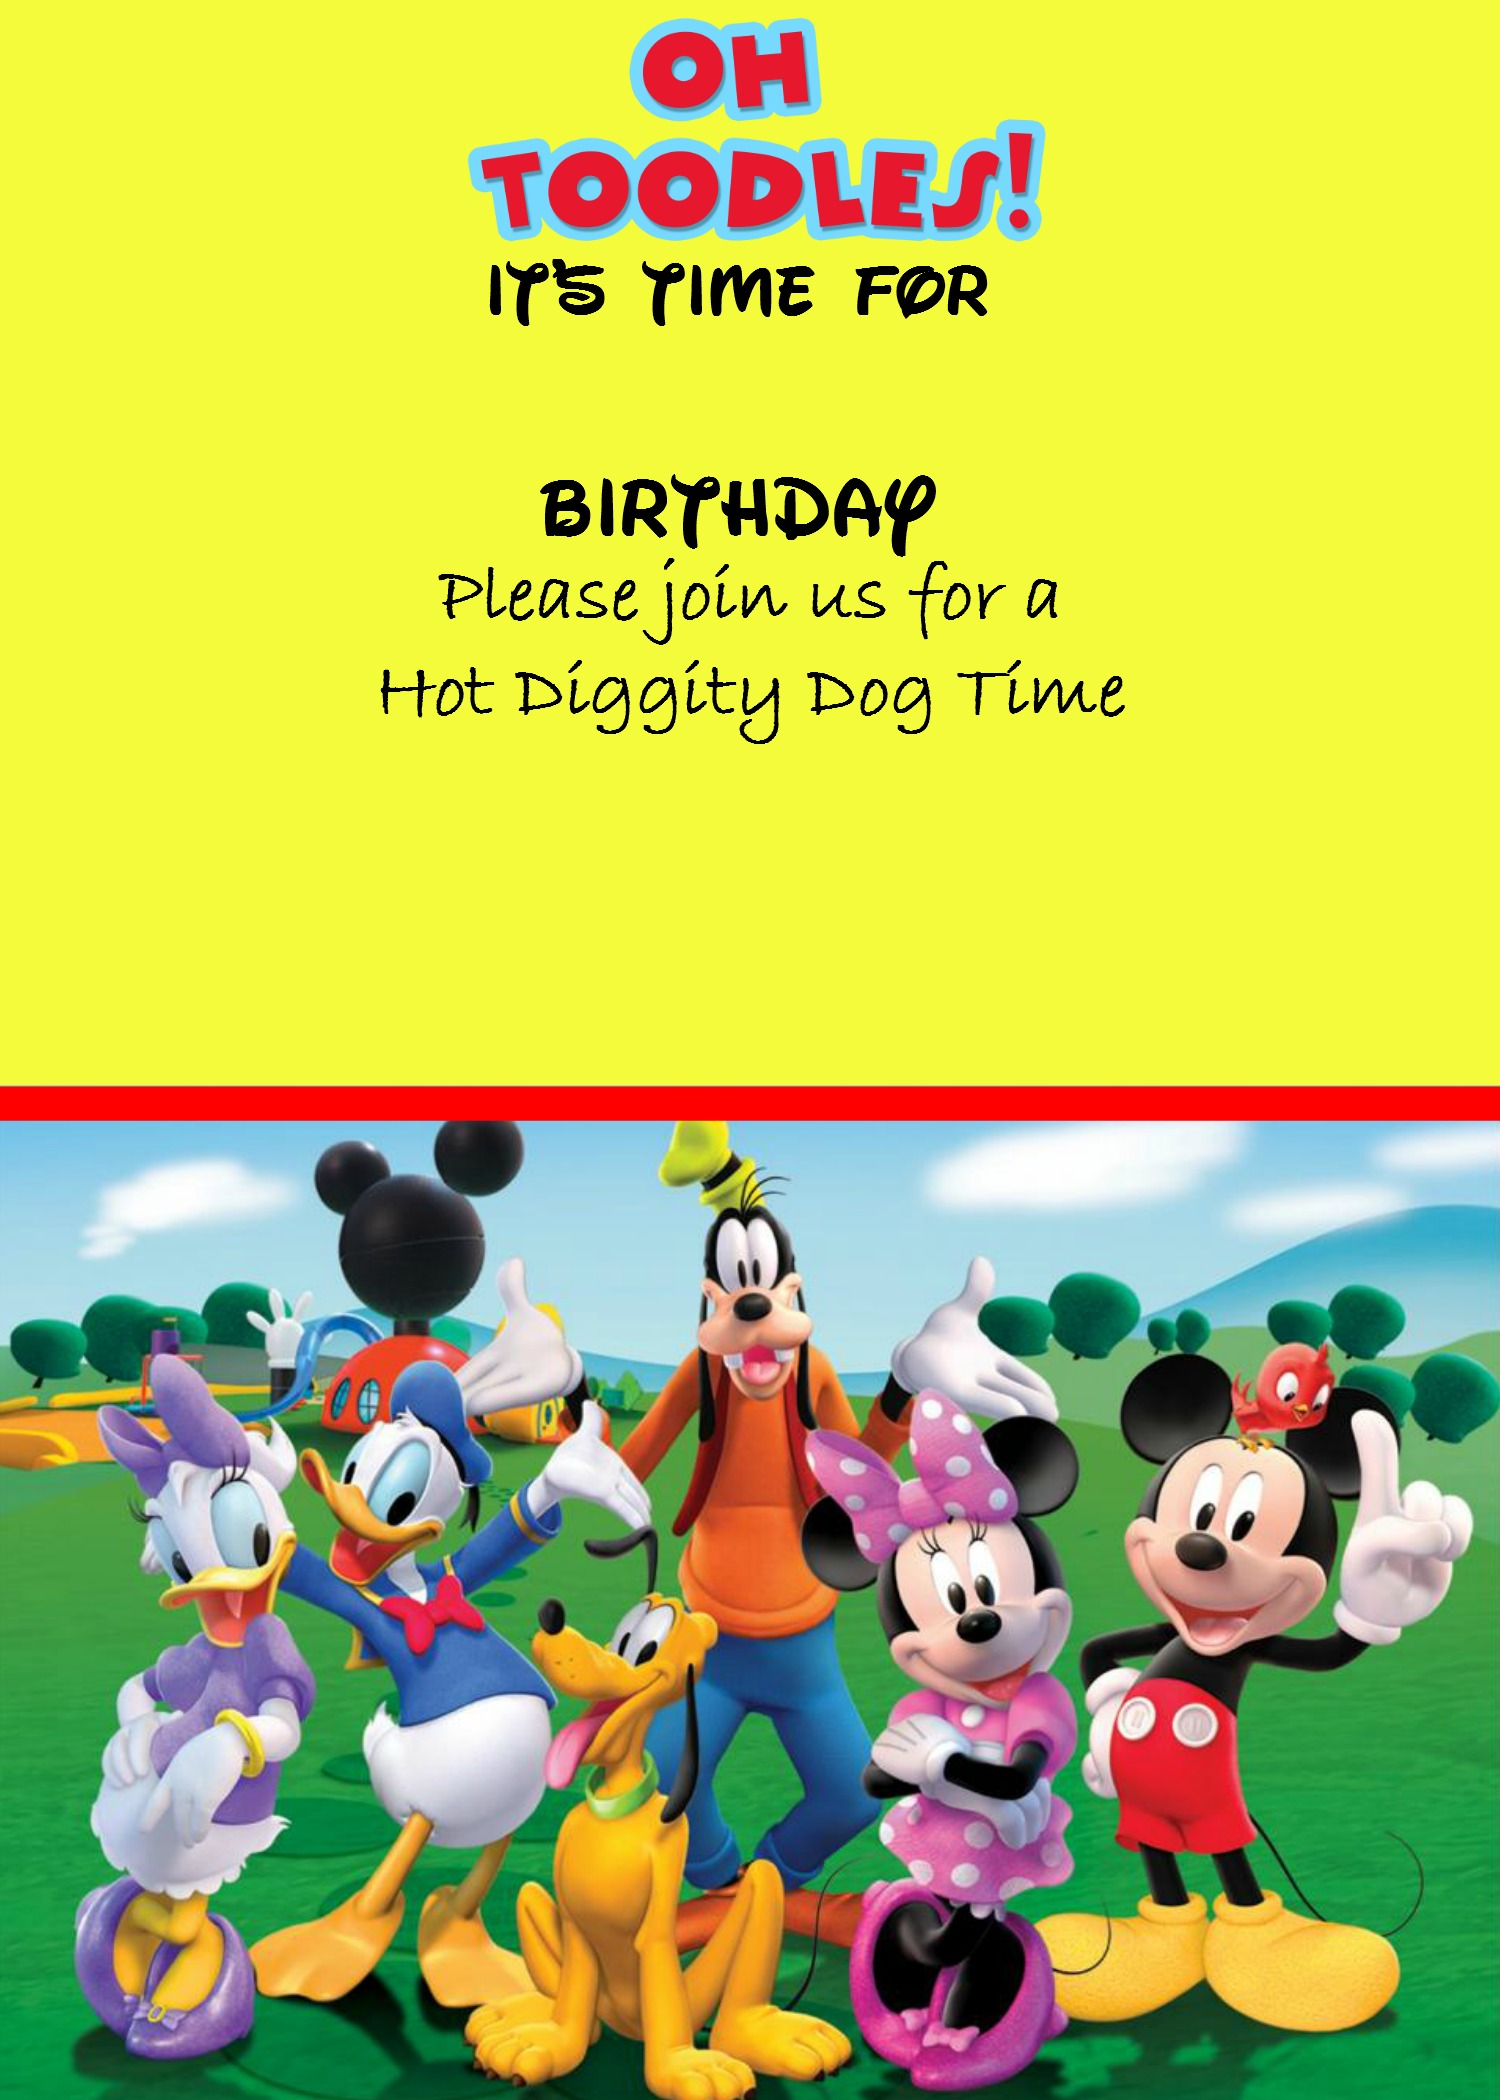 How to make a Mickey Mouse digital invitation (with free image